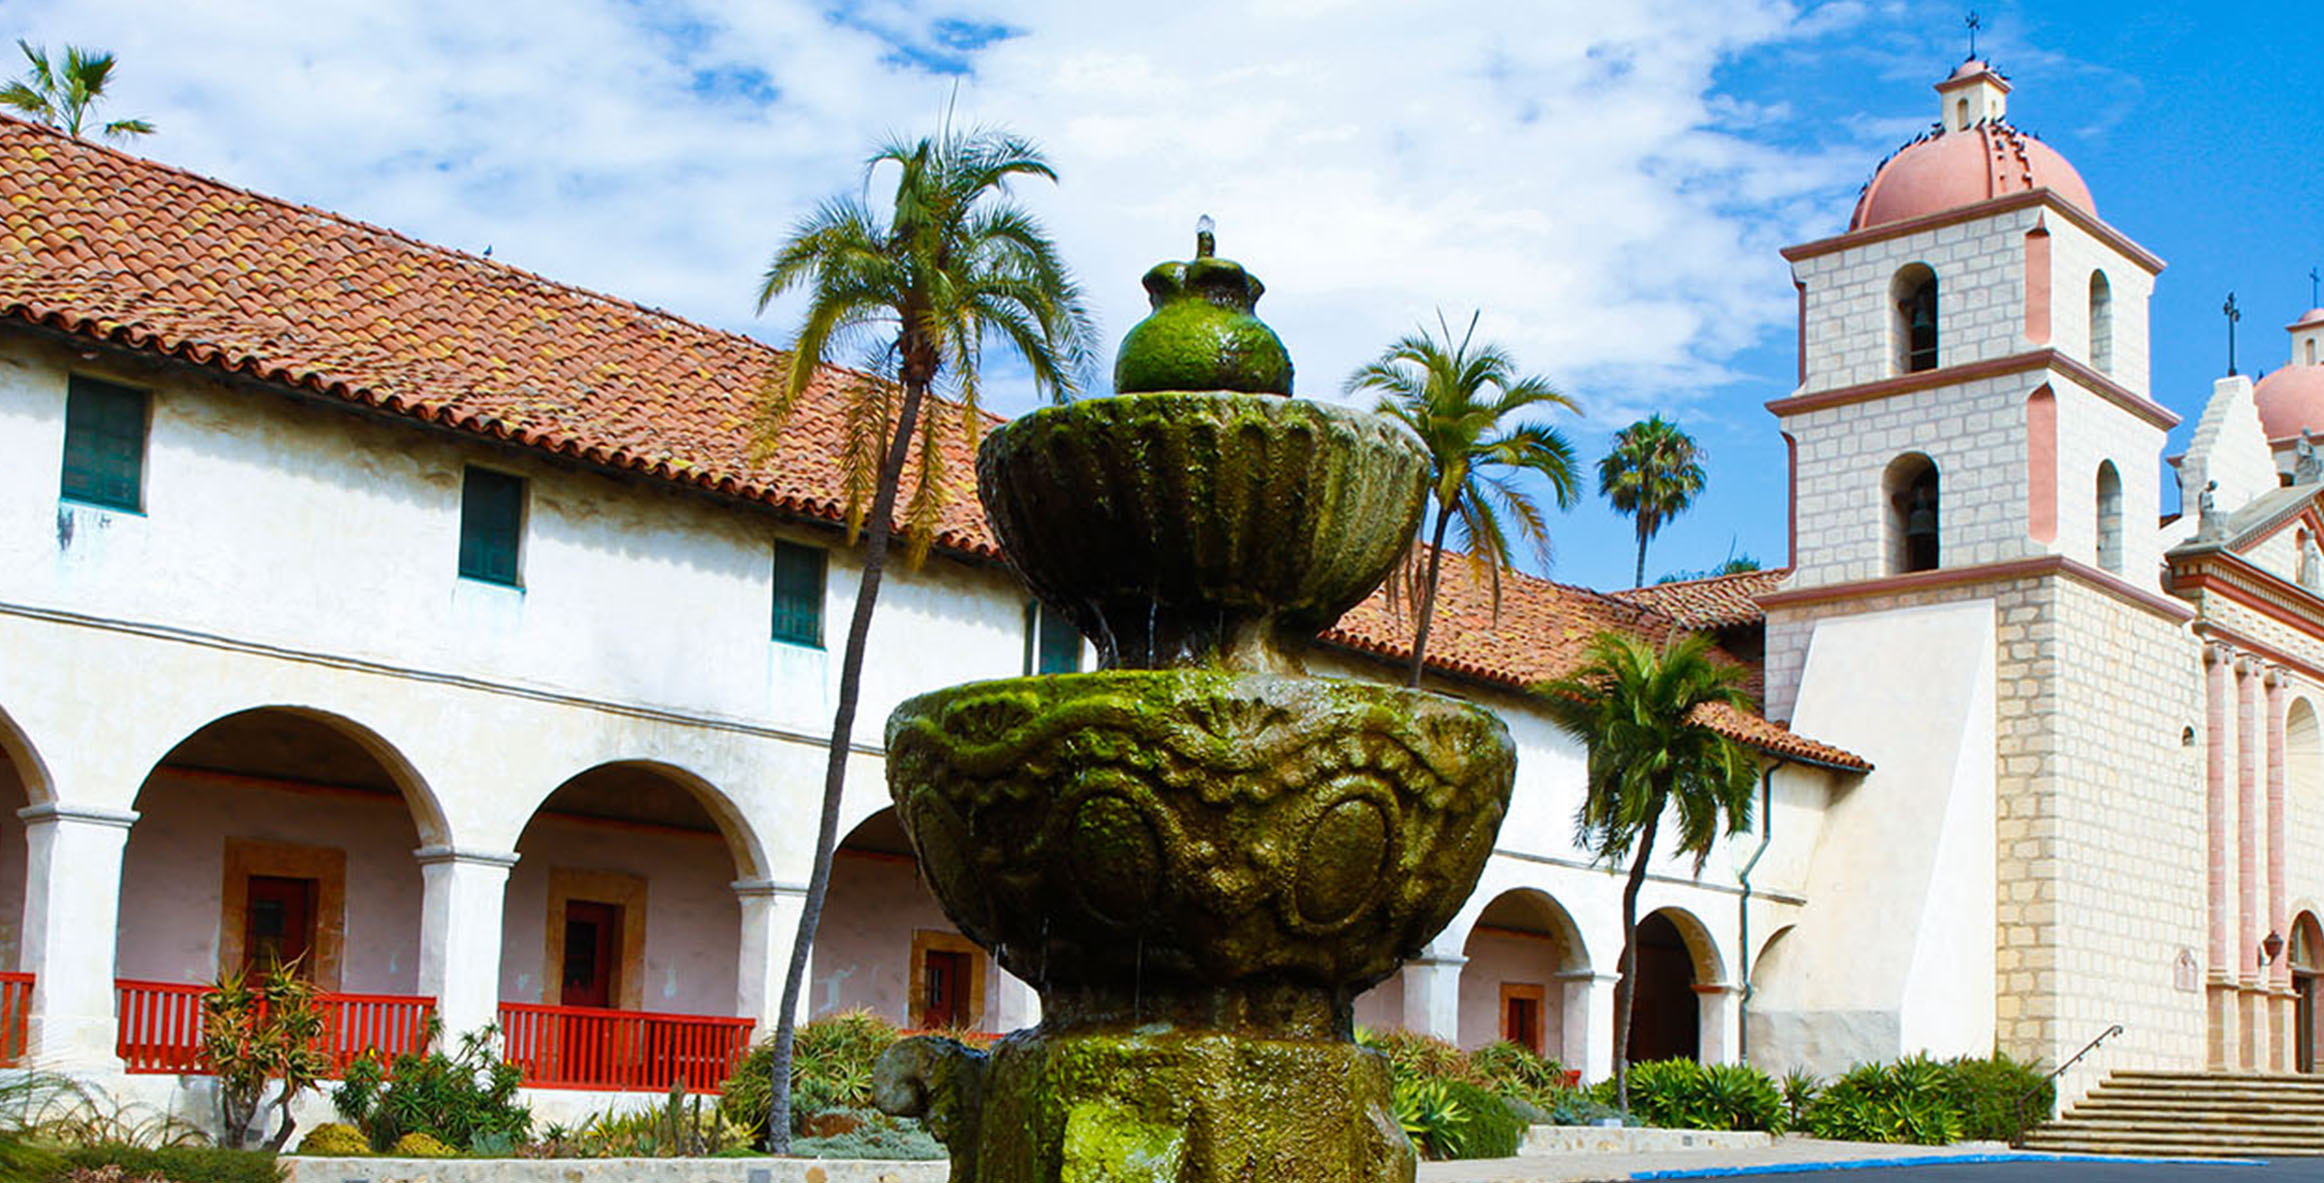 VISIT POPULAR SANTA BARBARA ATTRACTIONS